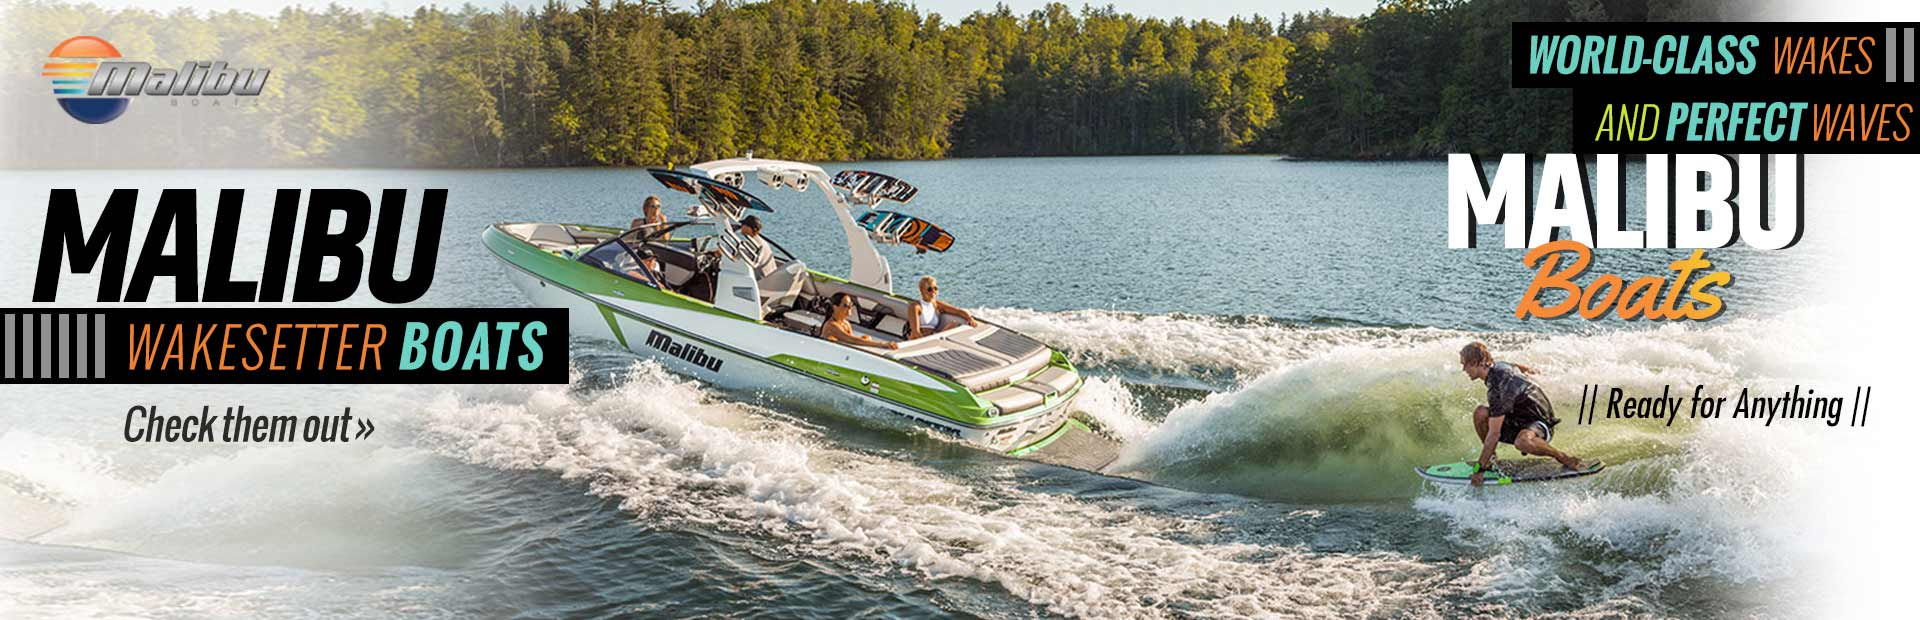 Click here to check out our selection of Malibu Wakesetter boats!